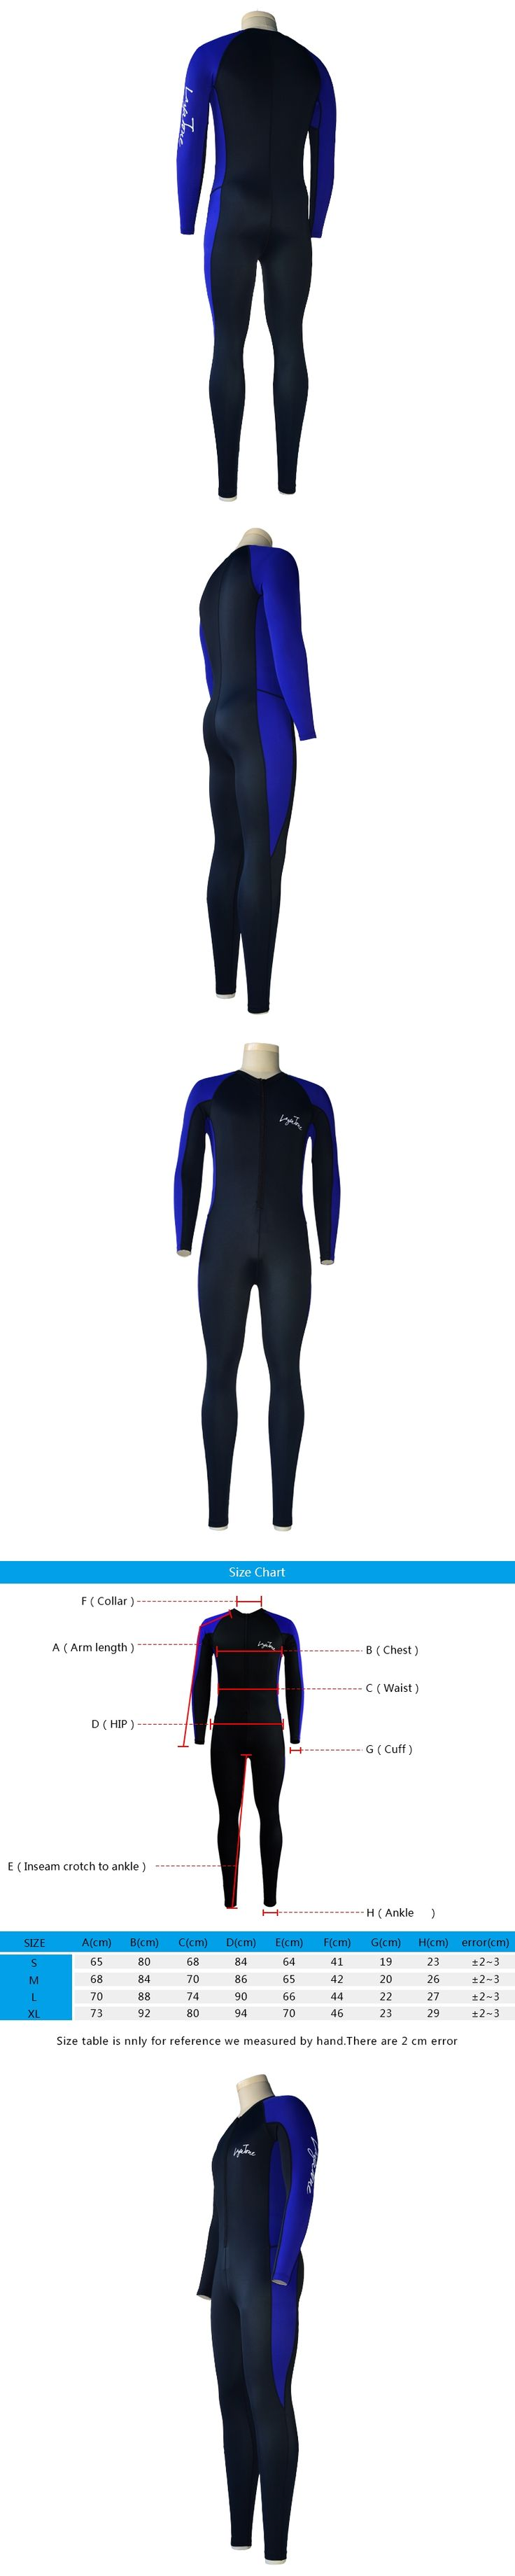 Rash Guards For Men Swimsuit Long Sleeved Lycra Rashguards Swimwear Sport Wetsuit Spearfishing Scuba Layatone C1604